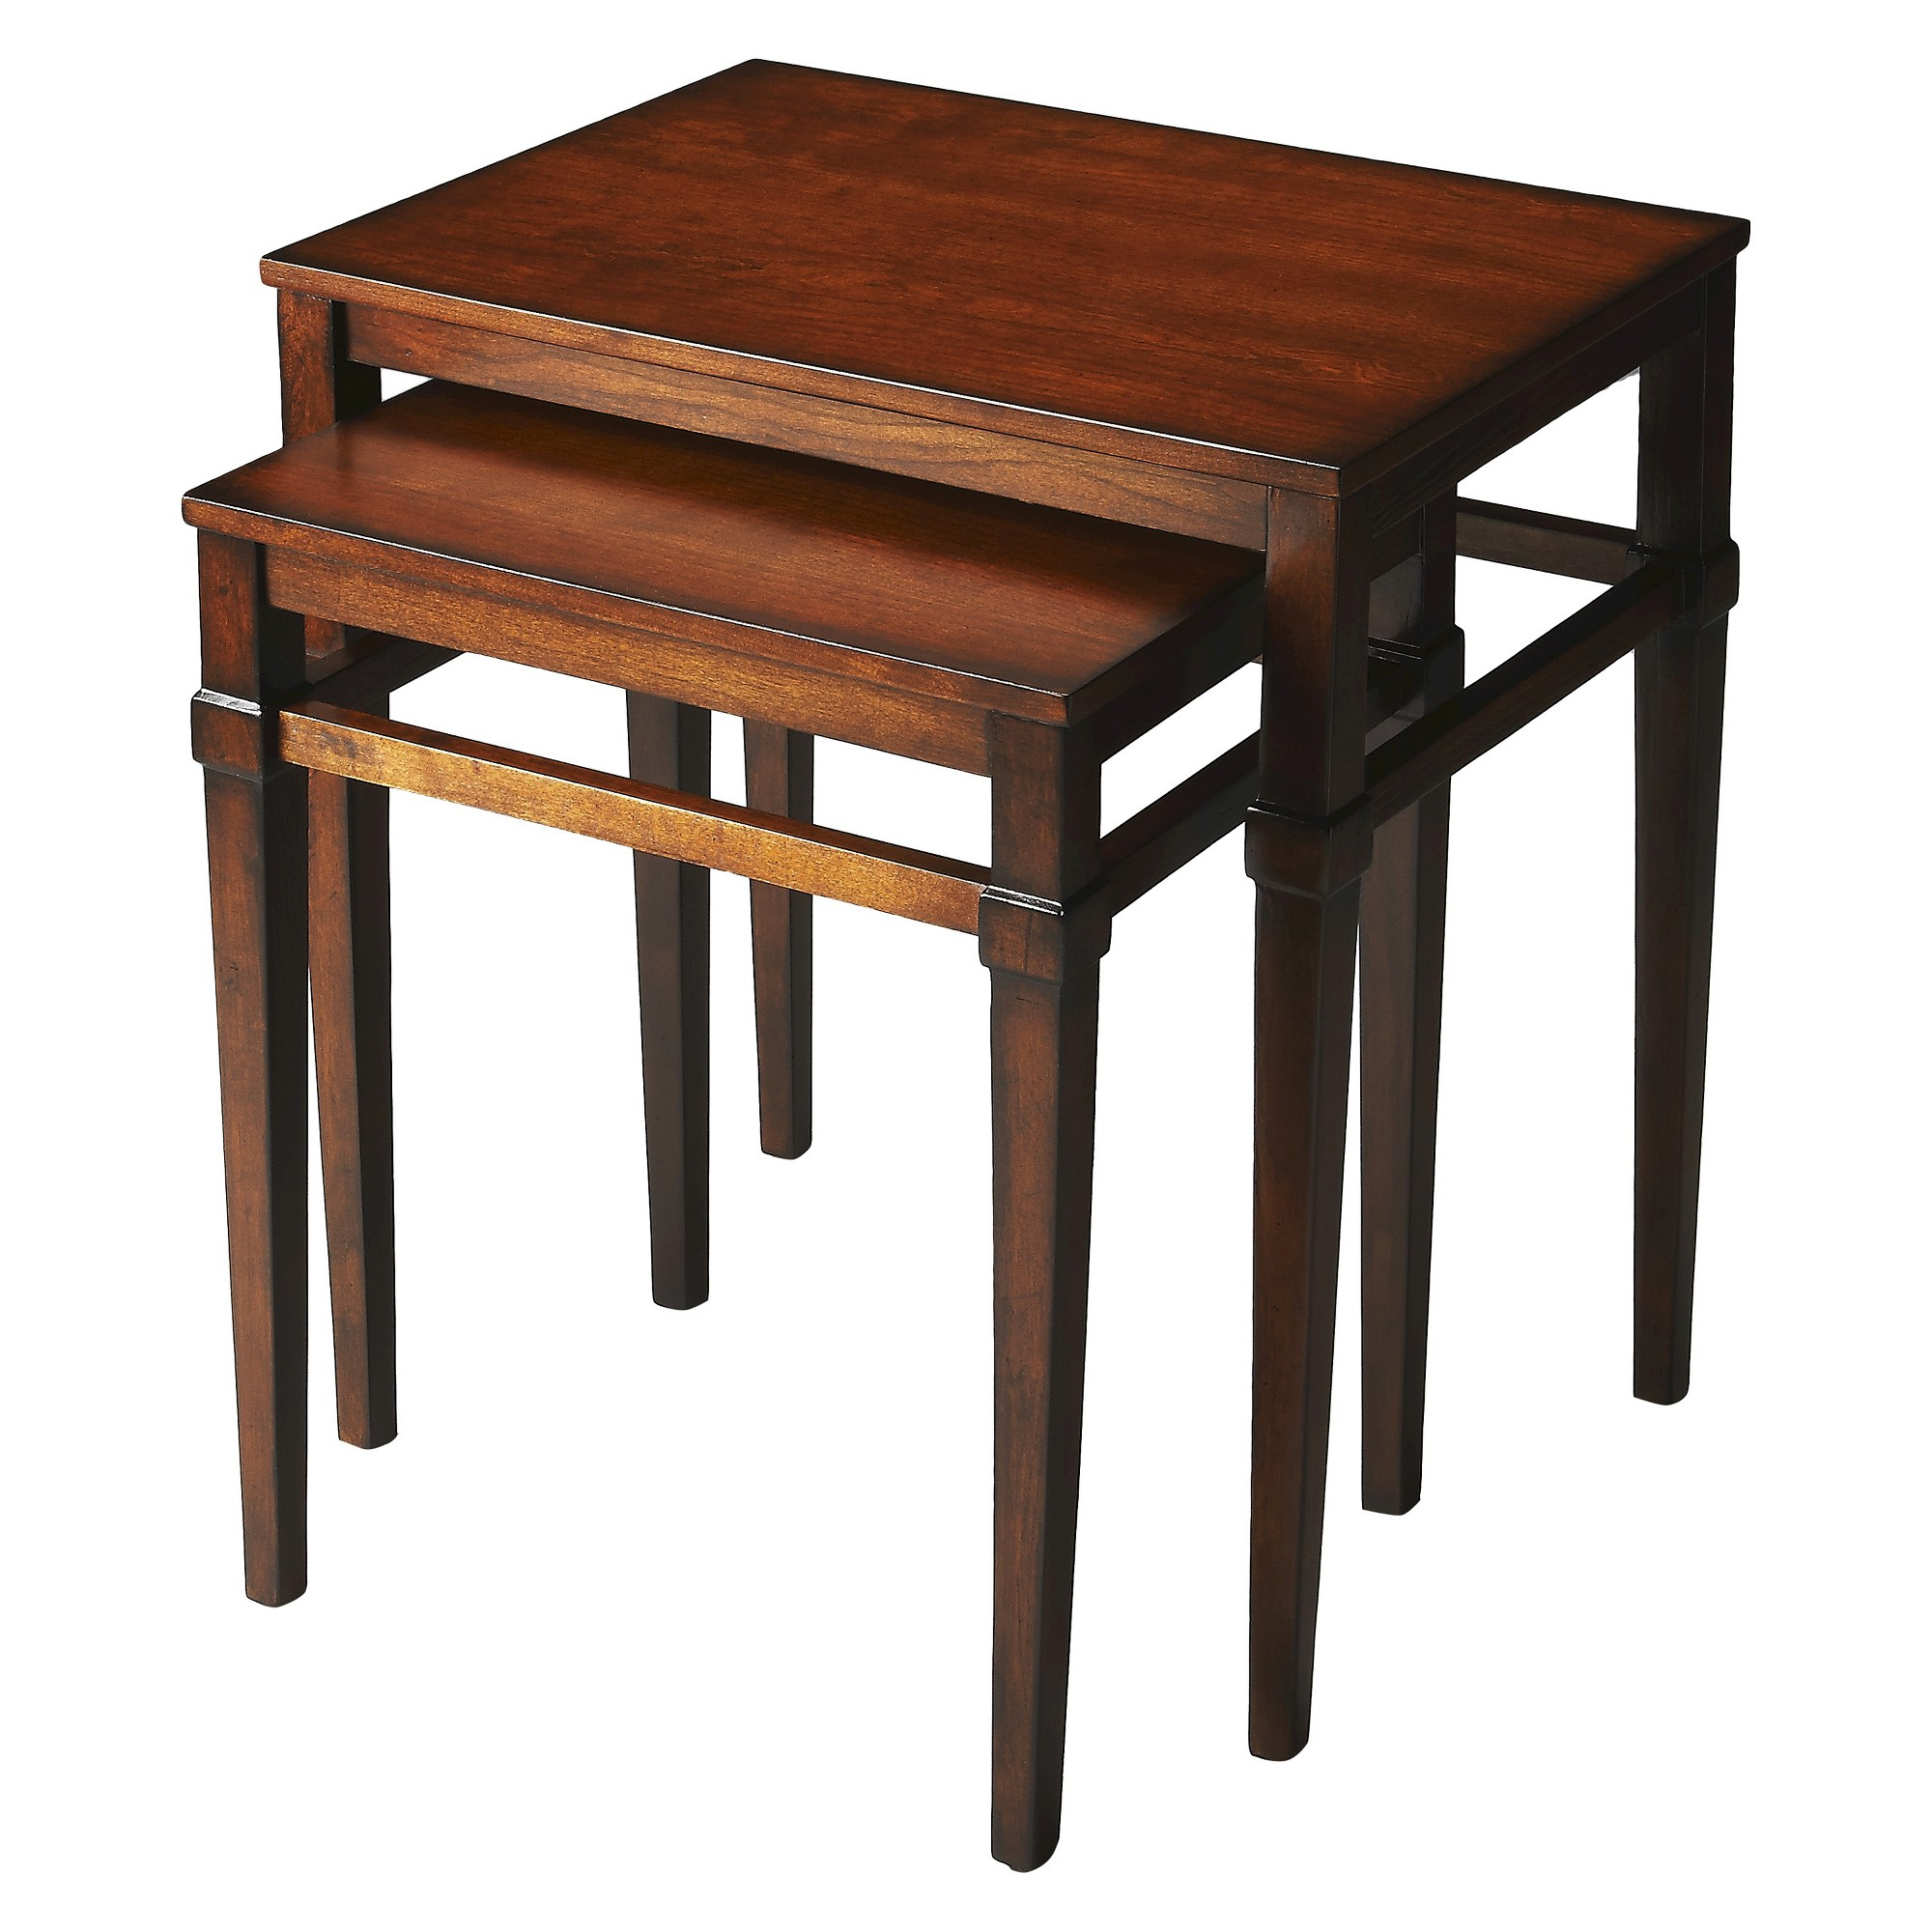 Nolan Antique Cherry End Tables Nest Butler Specialty Red